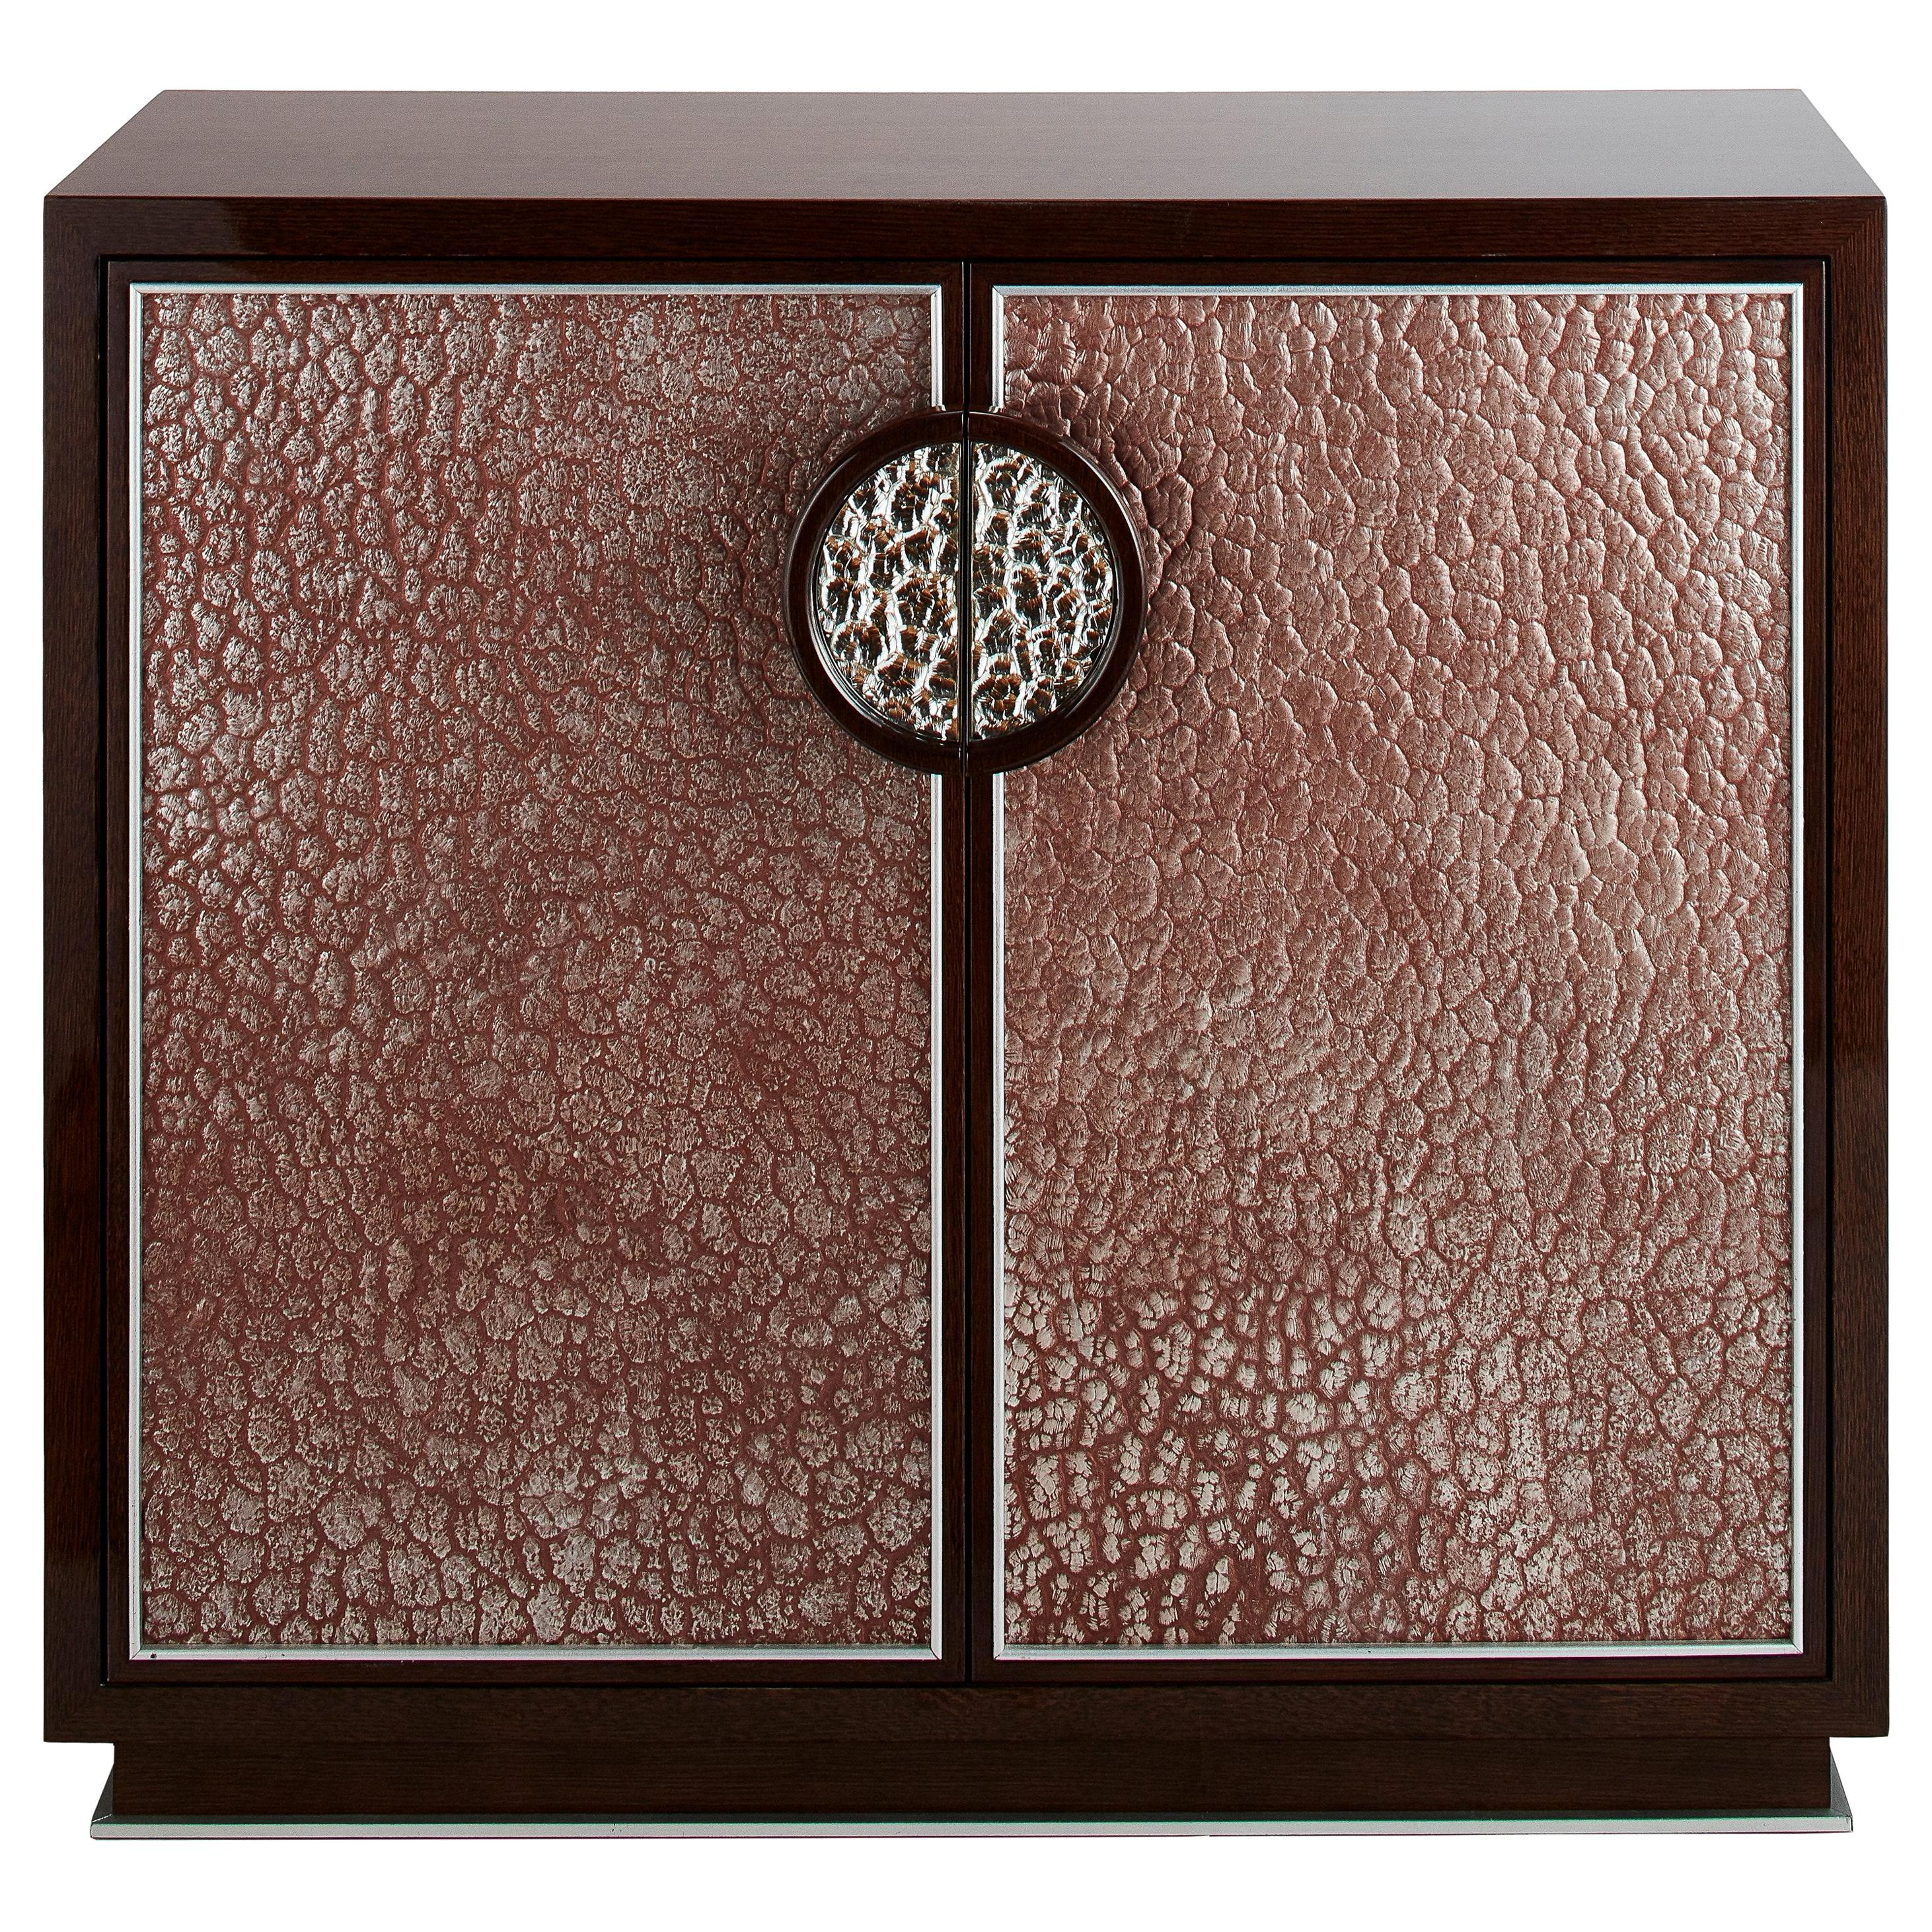 Small Walnut Veneer Cabinet with Decorative Glass Platine Panels, Available Now